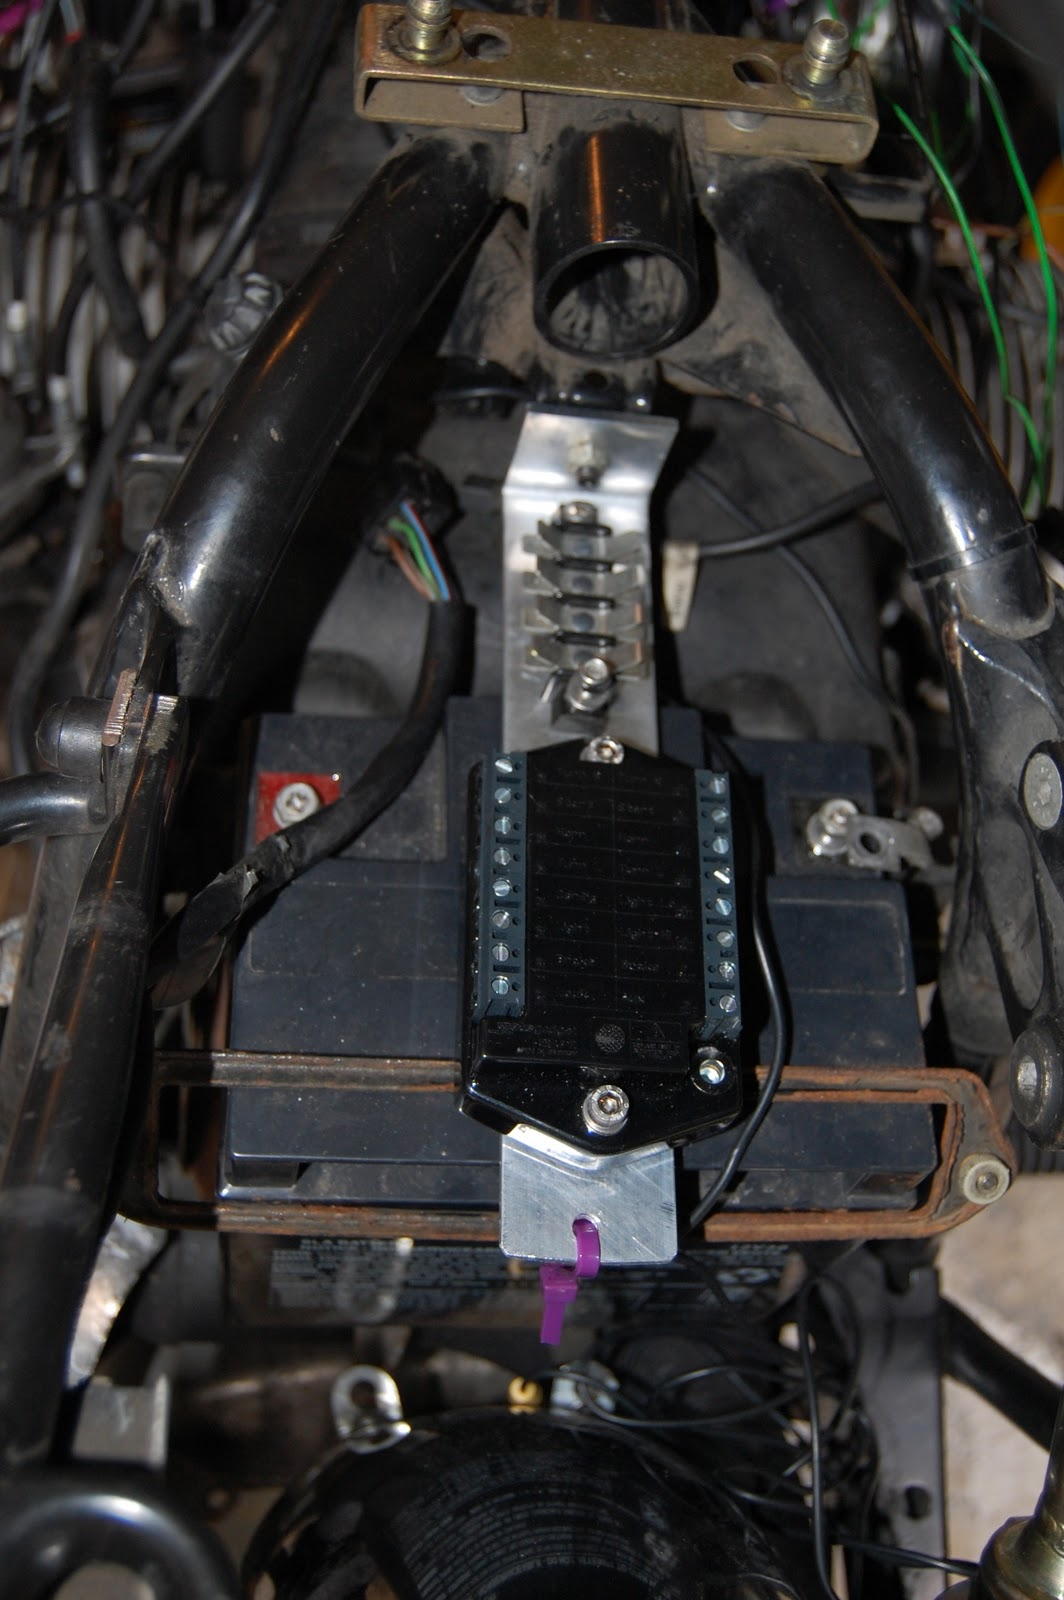 The Motorcycle Maintenance Diaries  Rewiring 101 With The Motogadget M